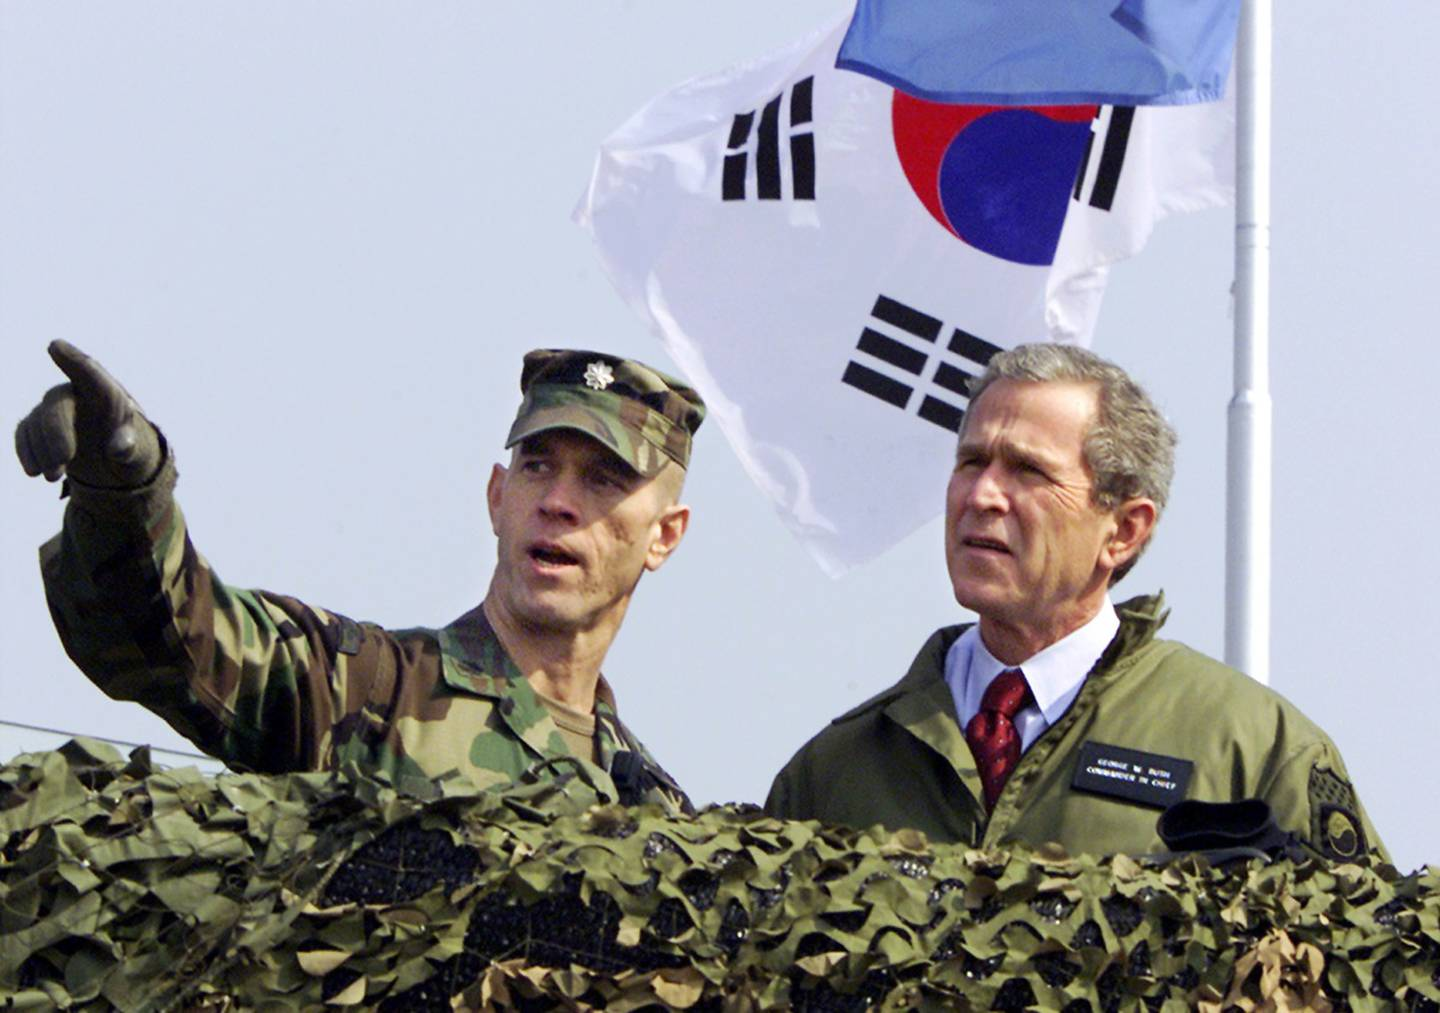 President George W. Bush, right, looks out at North Korea from Observation Point Ouellette in the Demilitarized Zone, the tense military border between the two Koreas, in Panmunjom, Korea, on Feb. 20, 2002.